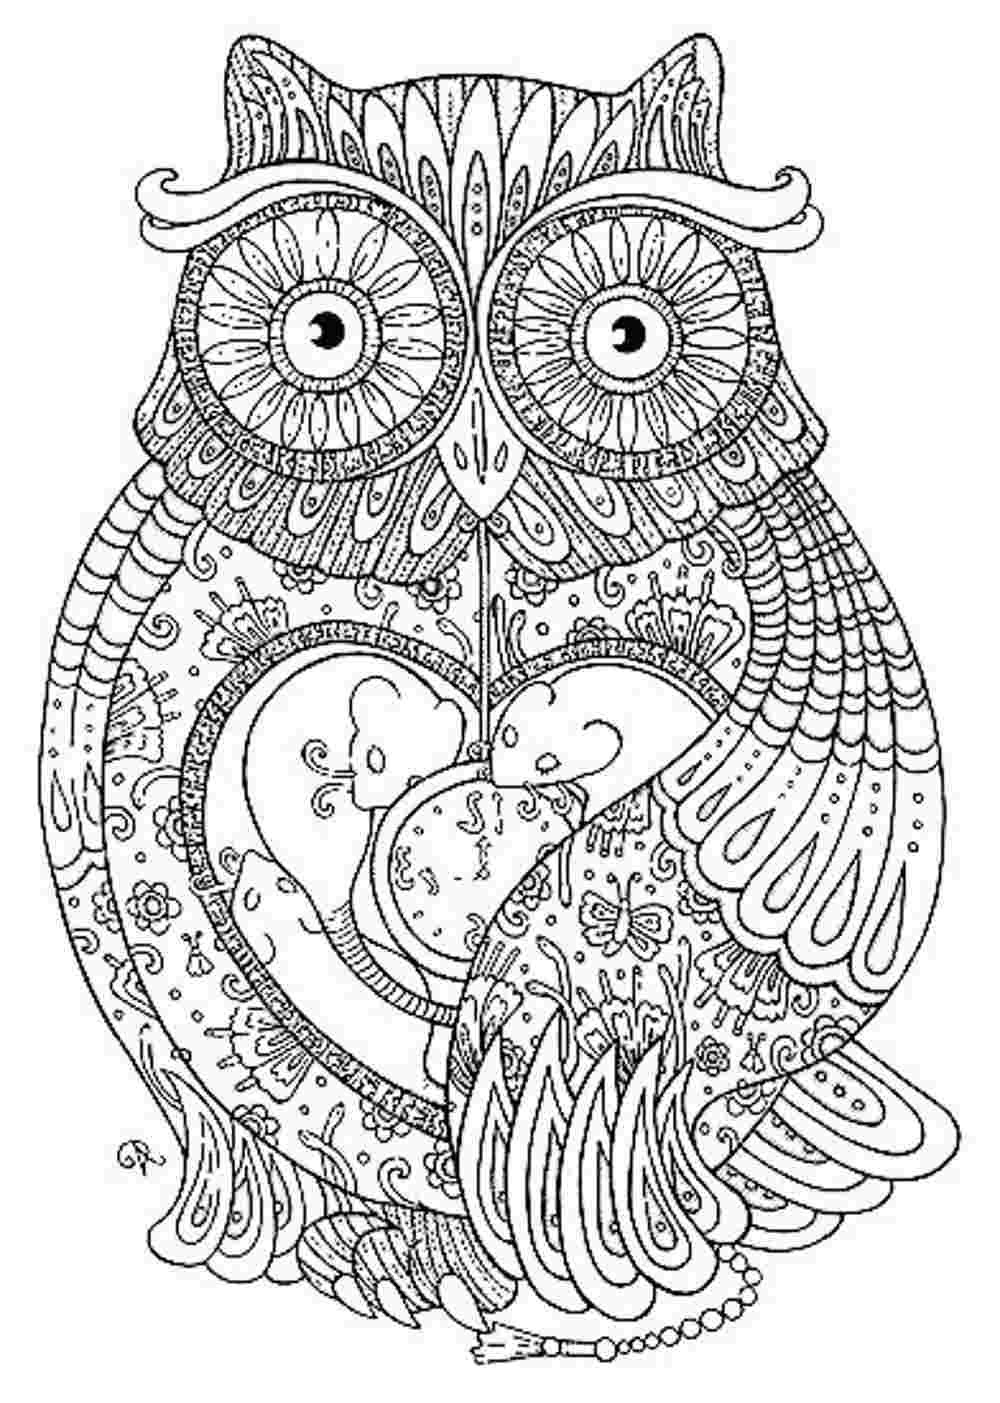 Printable Free Coloring Pages For Adults  44 Awesome Free Printable Coloring Pages for Adults